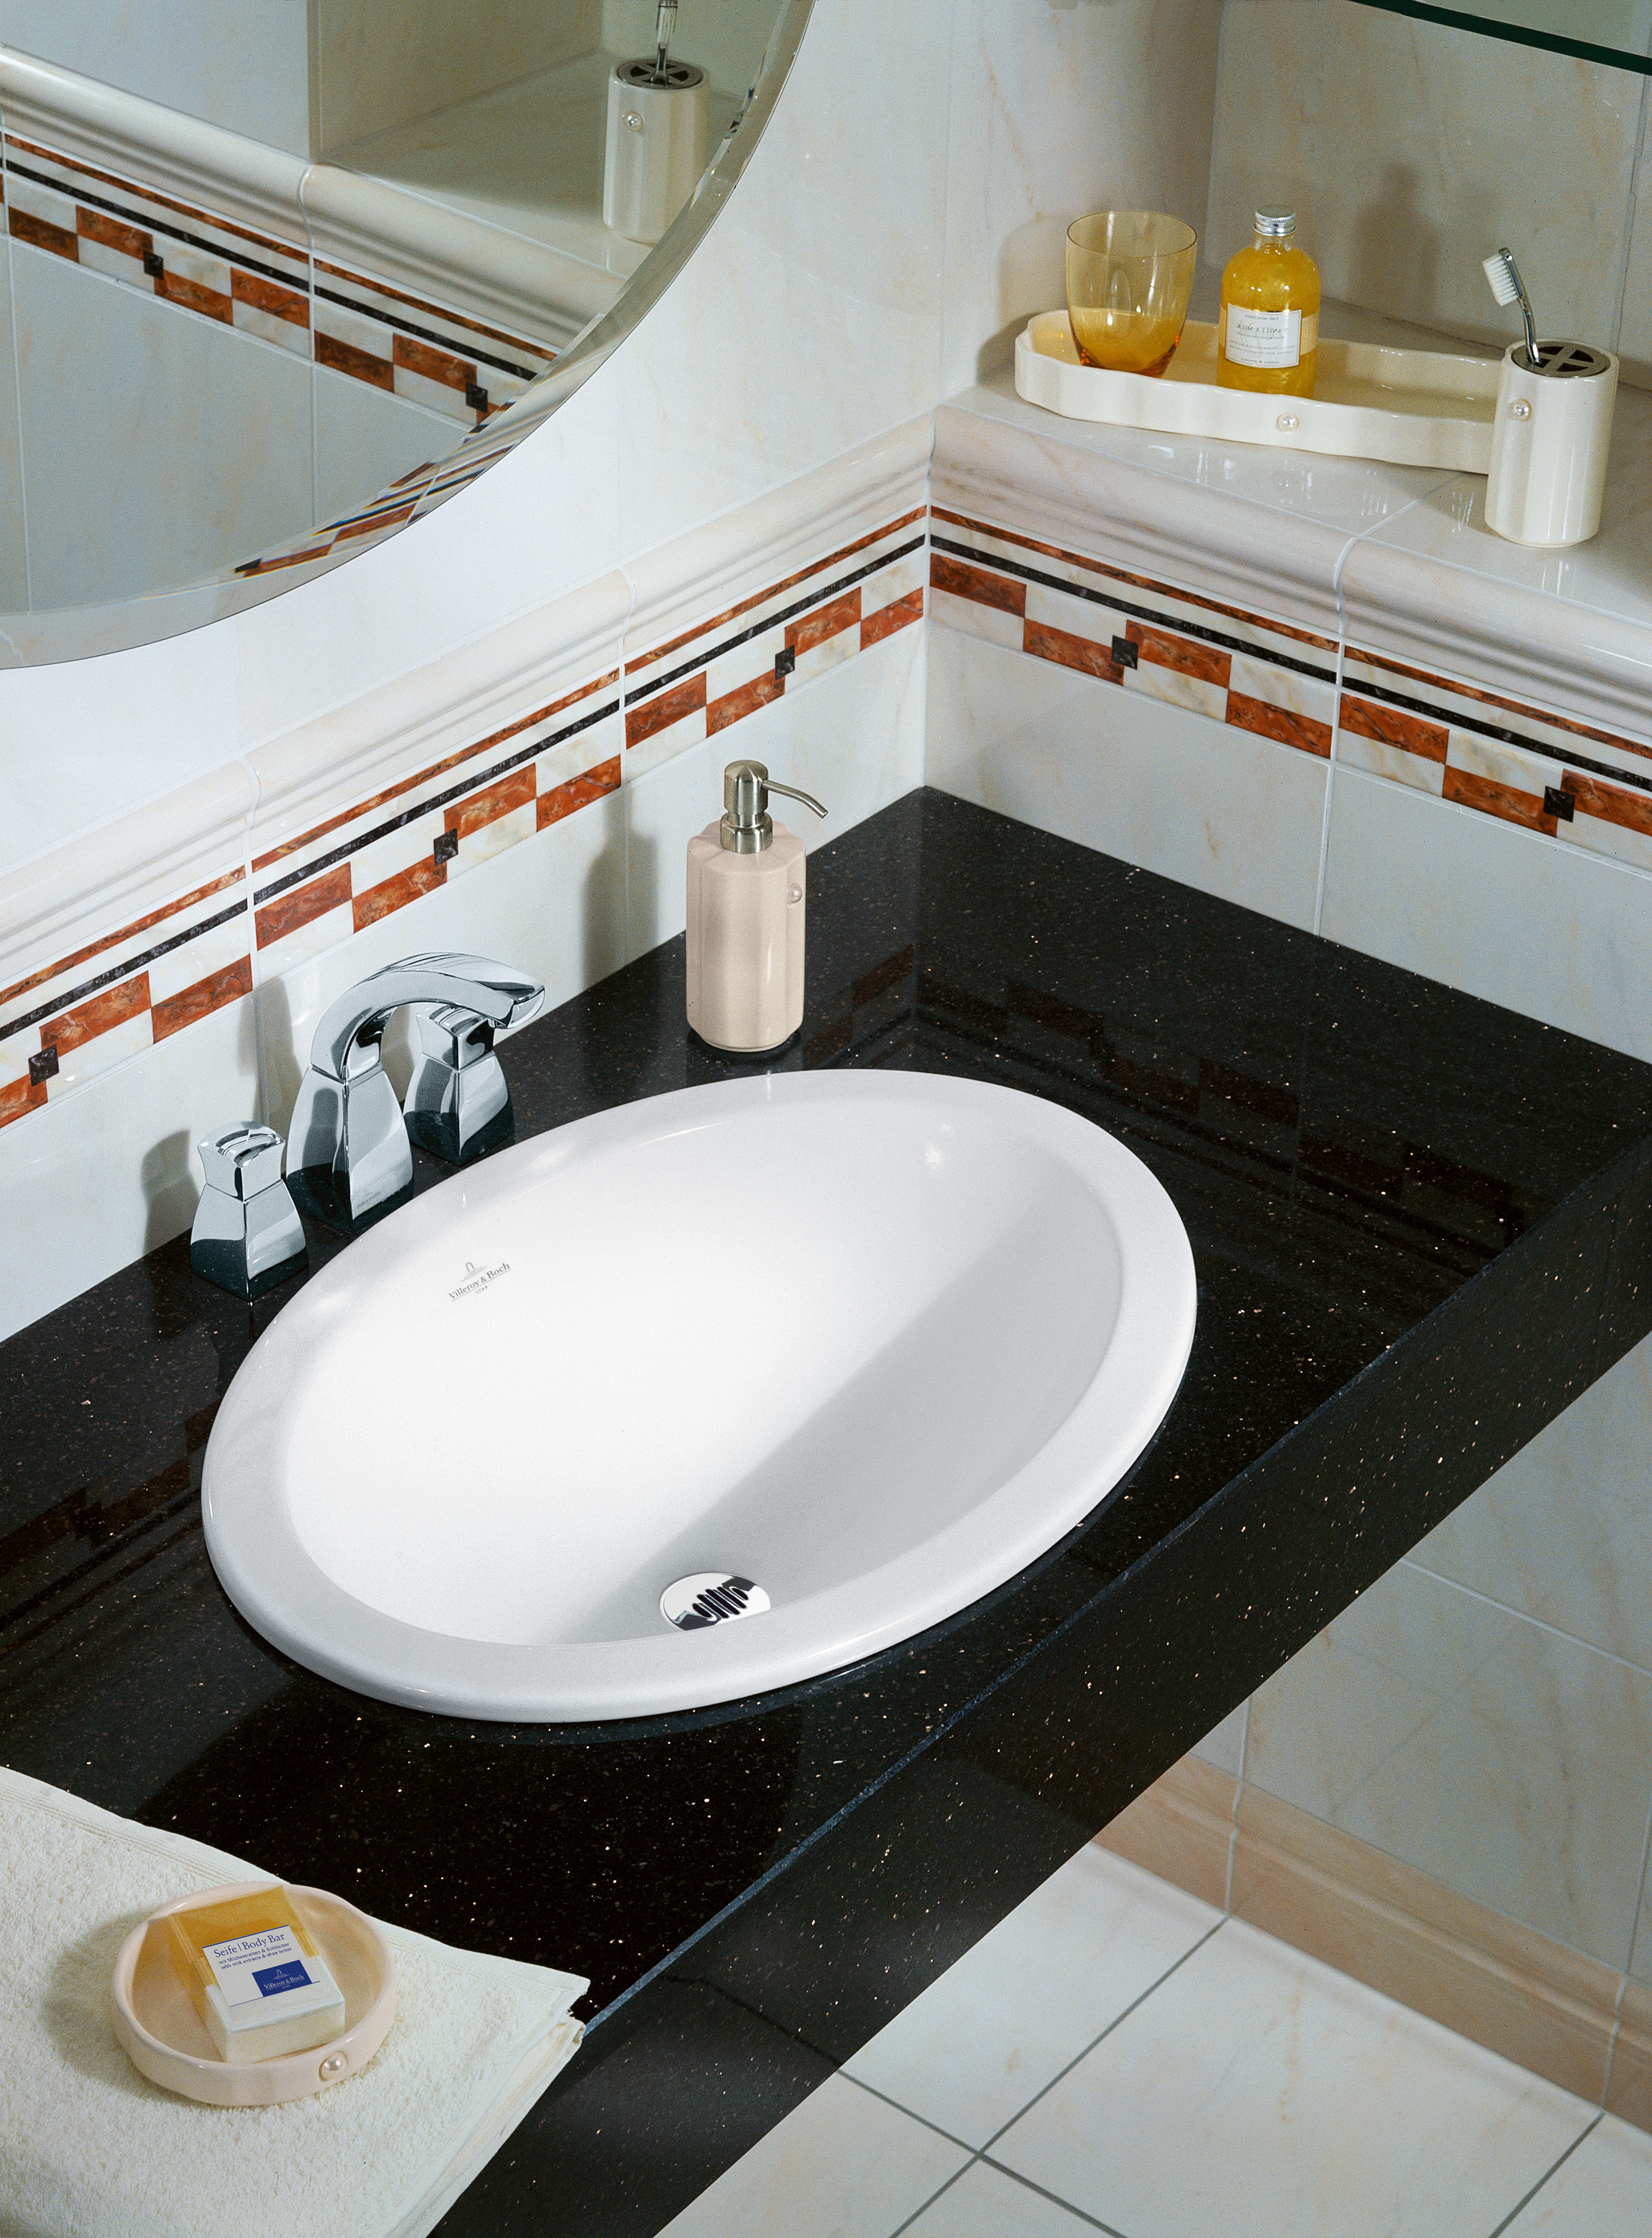 Loop & Friends Washbasin, Built-in washbasin, Washbasins, Built-in washbasins